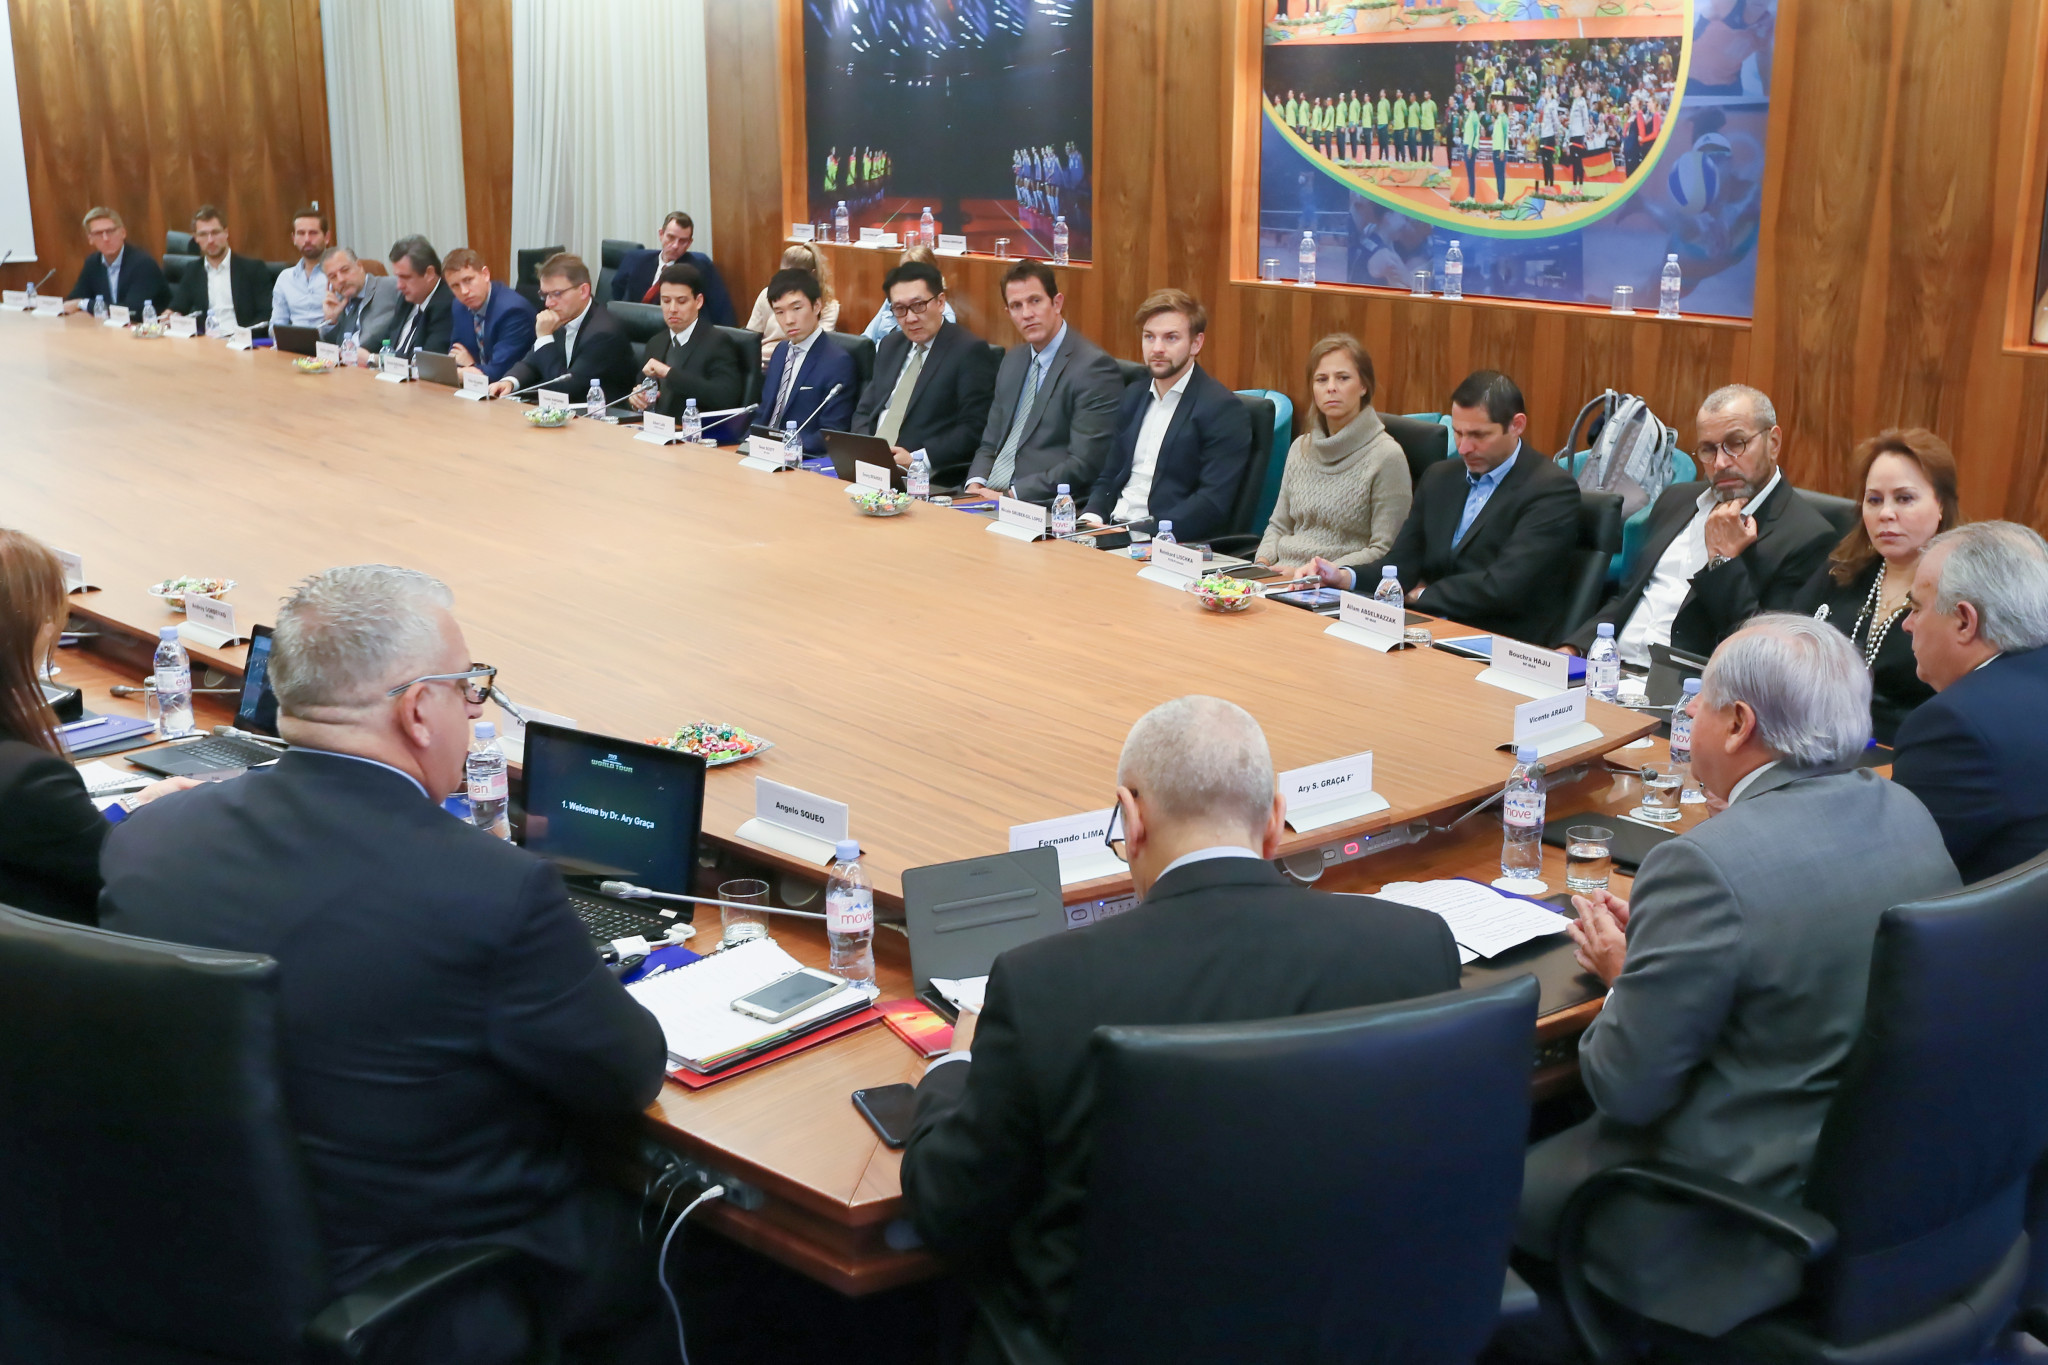 The calendar for the new beach volleybal season was announced following an FIVB World Tour Council meeting ©FIVB